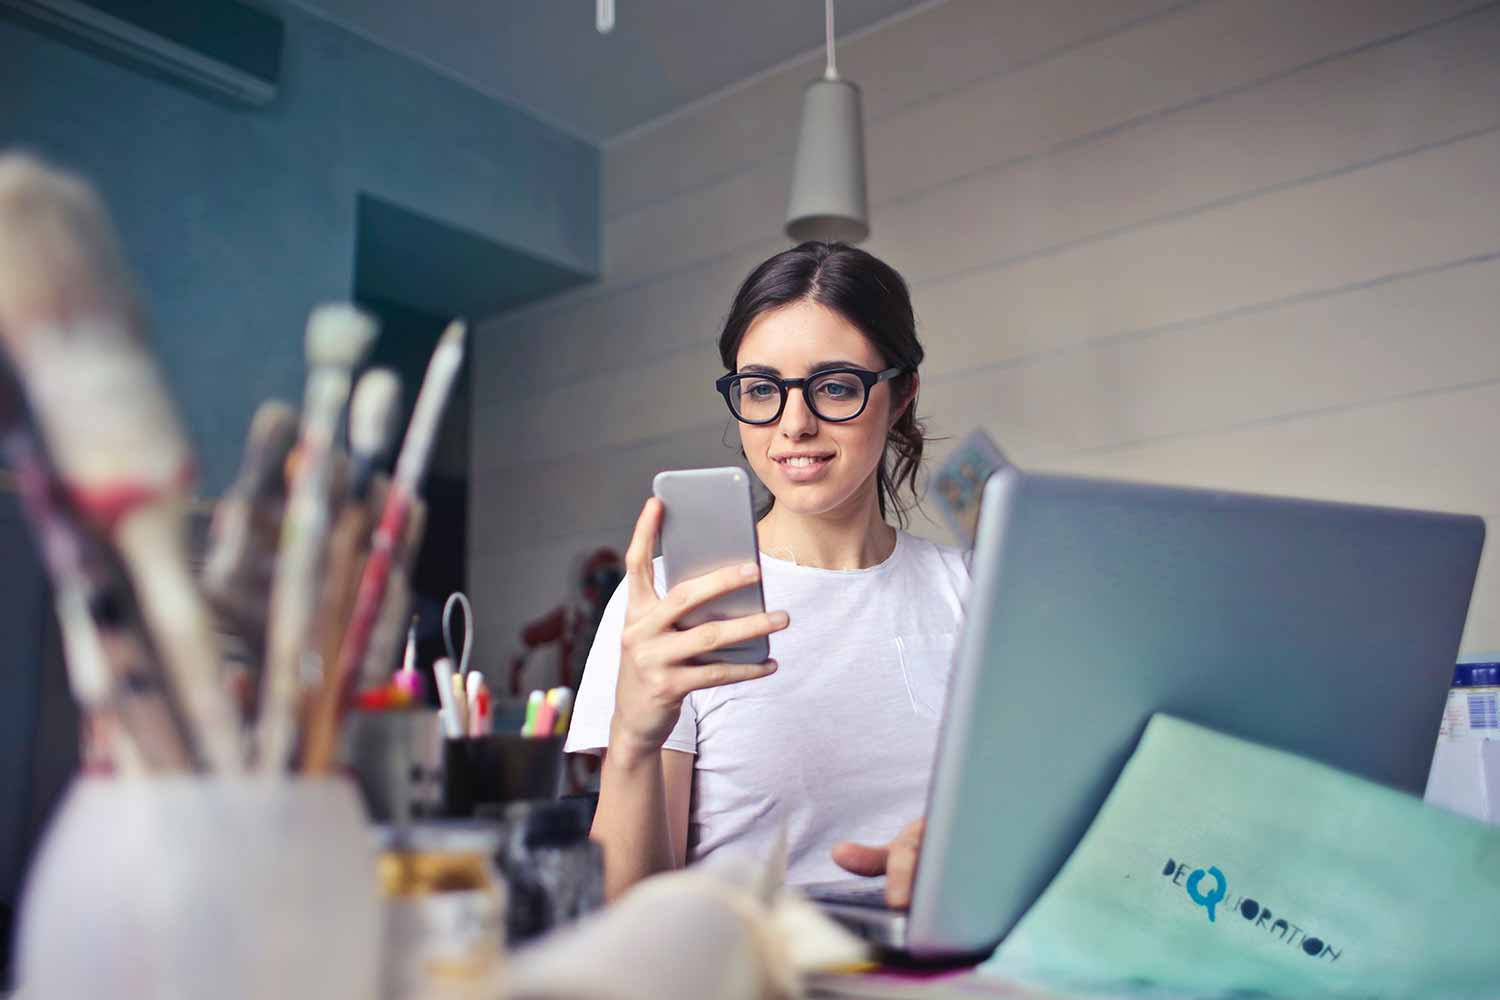 woman-checking-emails-on-phone